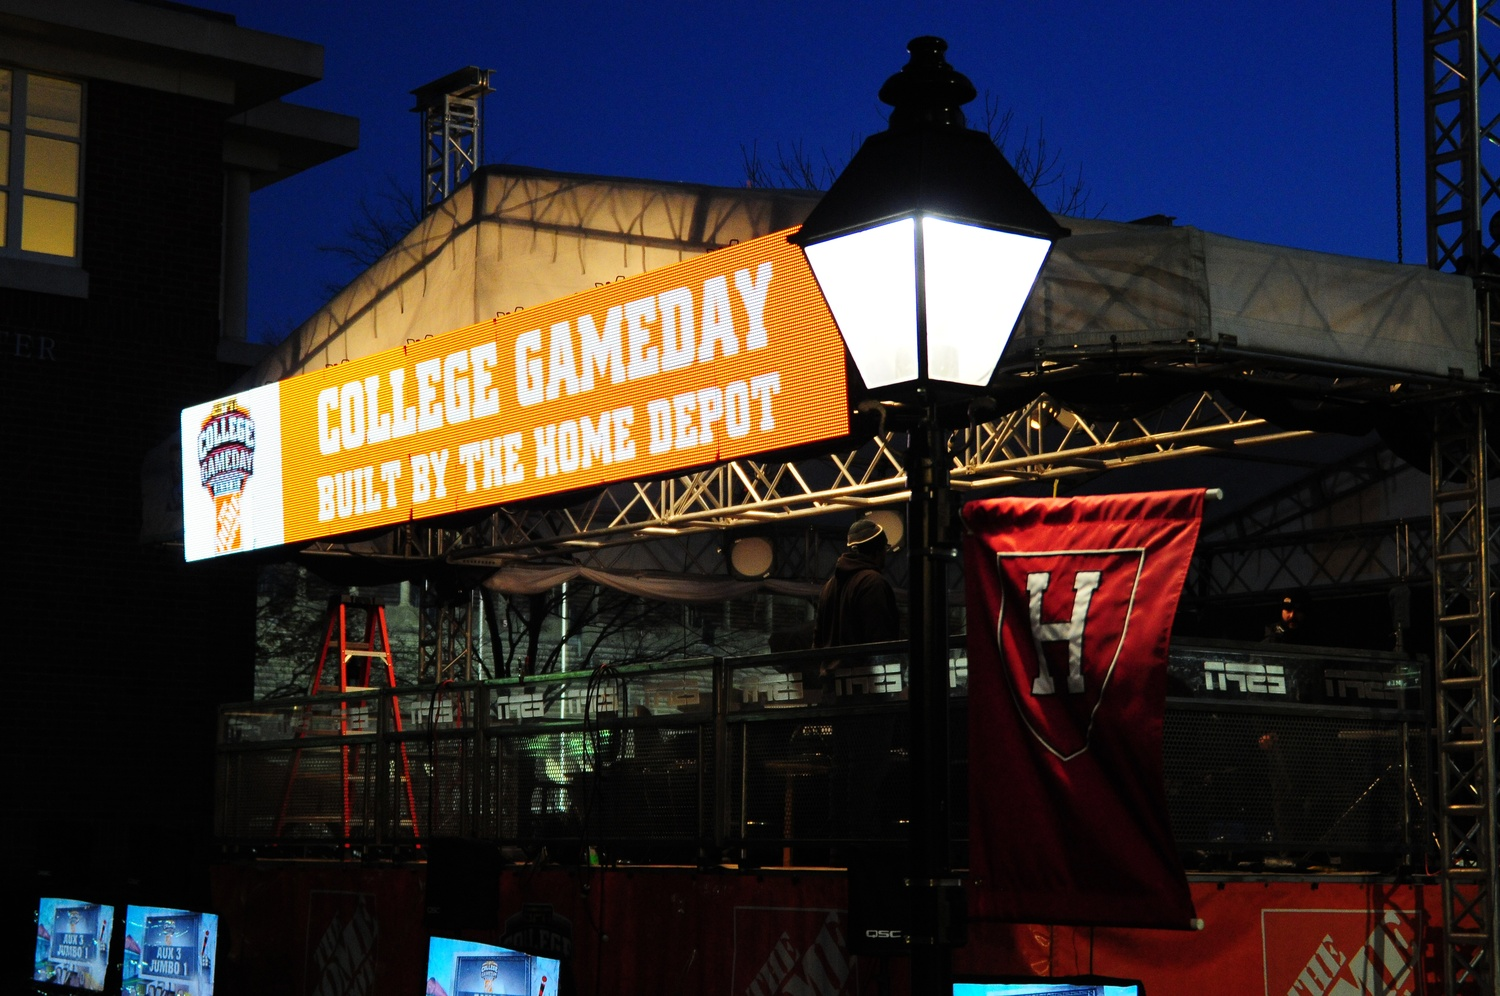 College GameDay comes to Harvard